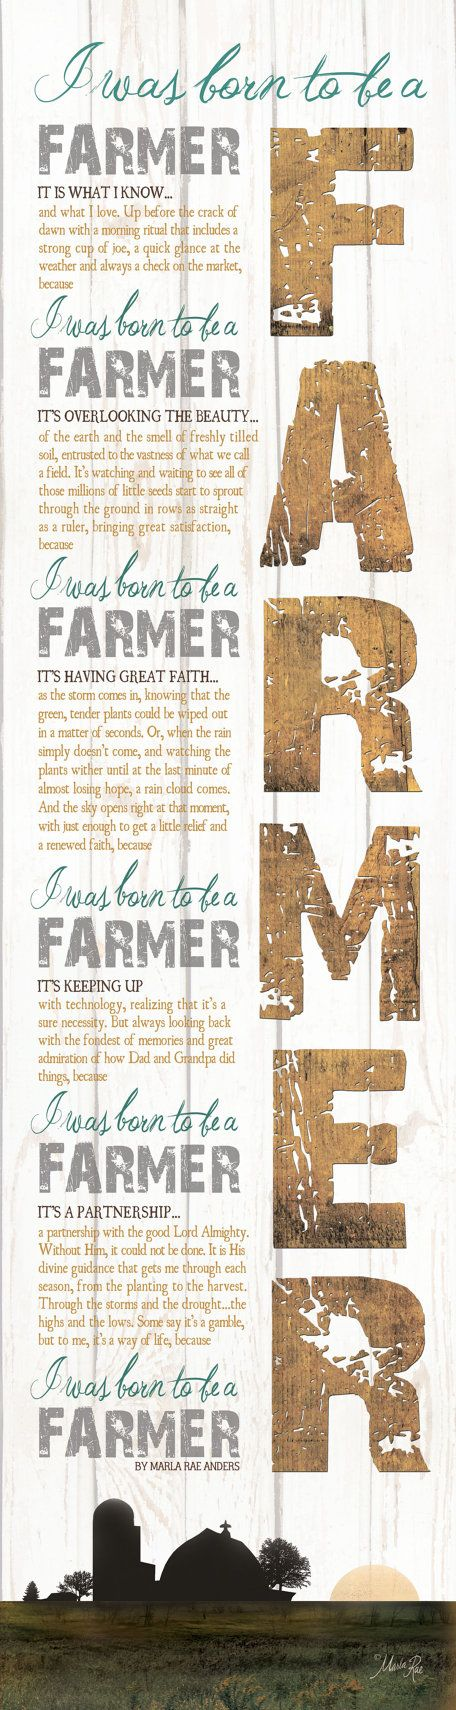 Born to be a Farmer                                                                                                                                                                                 More